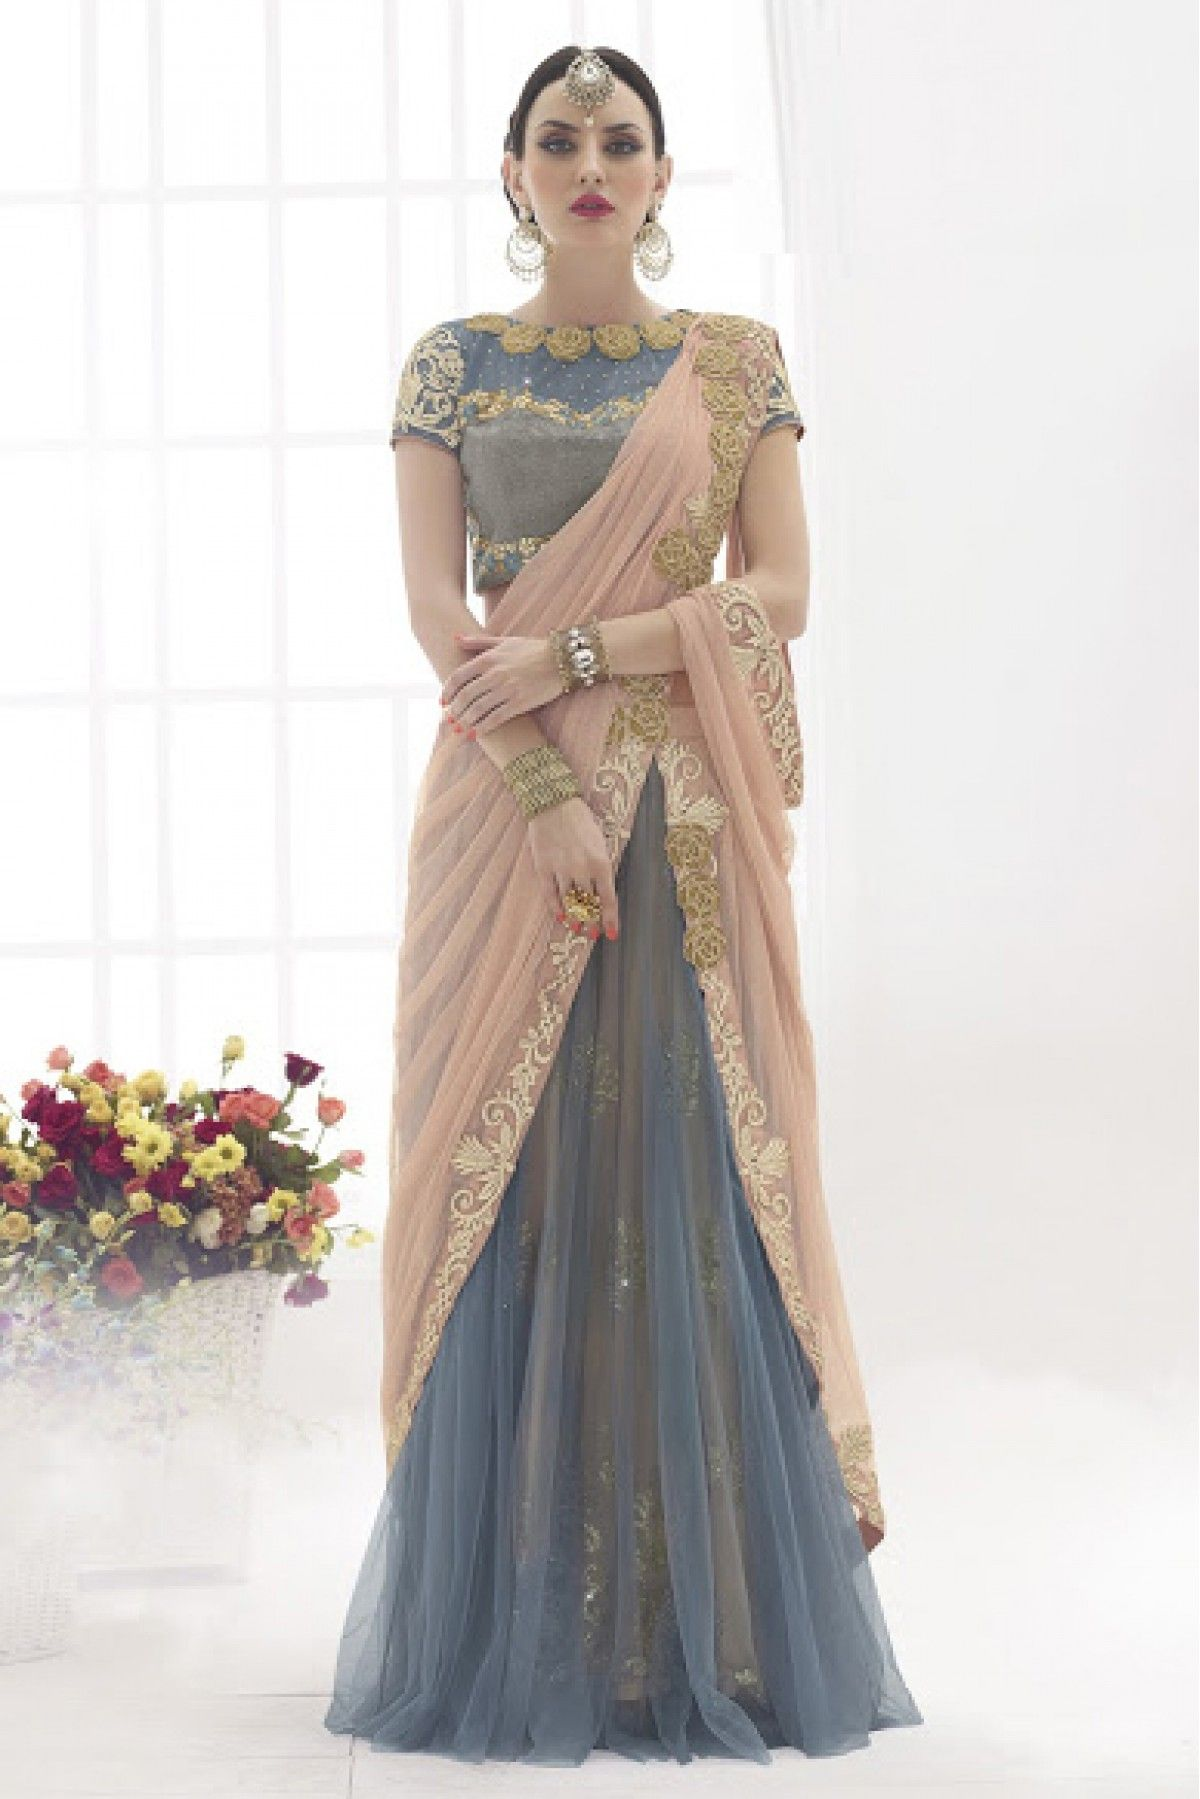 930cf44b7f Peach and Grey Colour Net Fabric Party Wear Lehenga Saree Comes With  Matching…